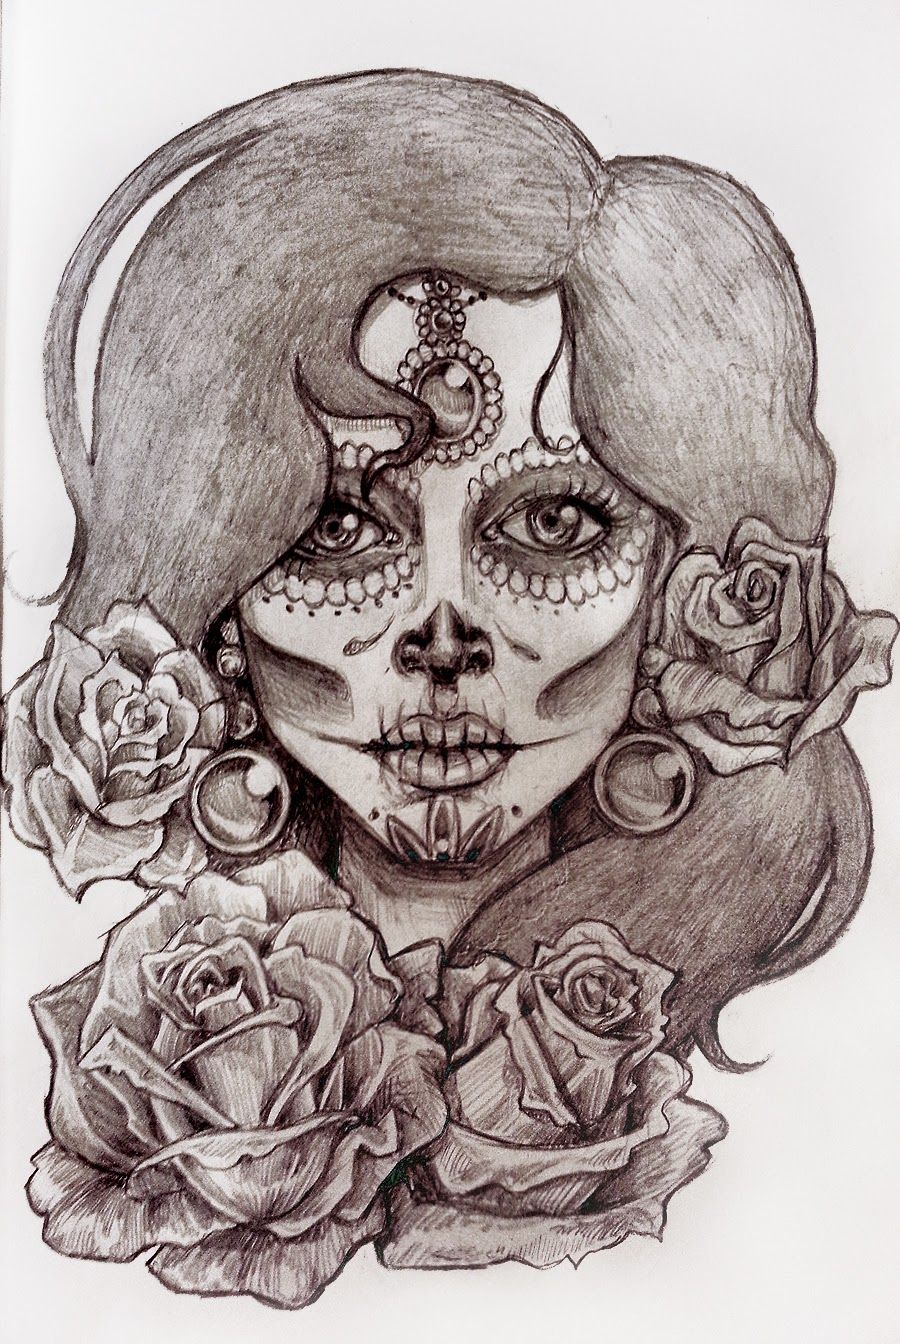 900x1344 Skull Face With Flowers And Webs Amazing Drawings Of Skull Faces